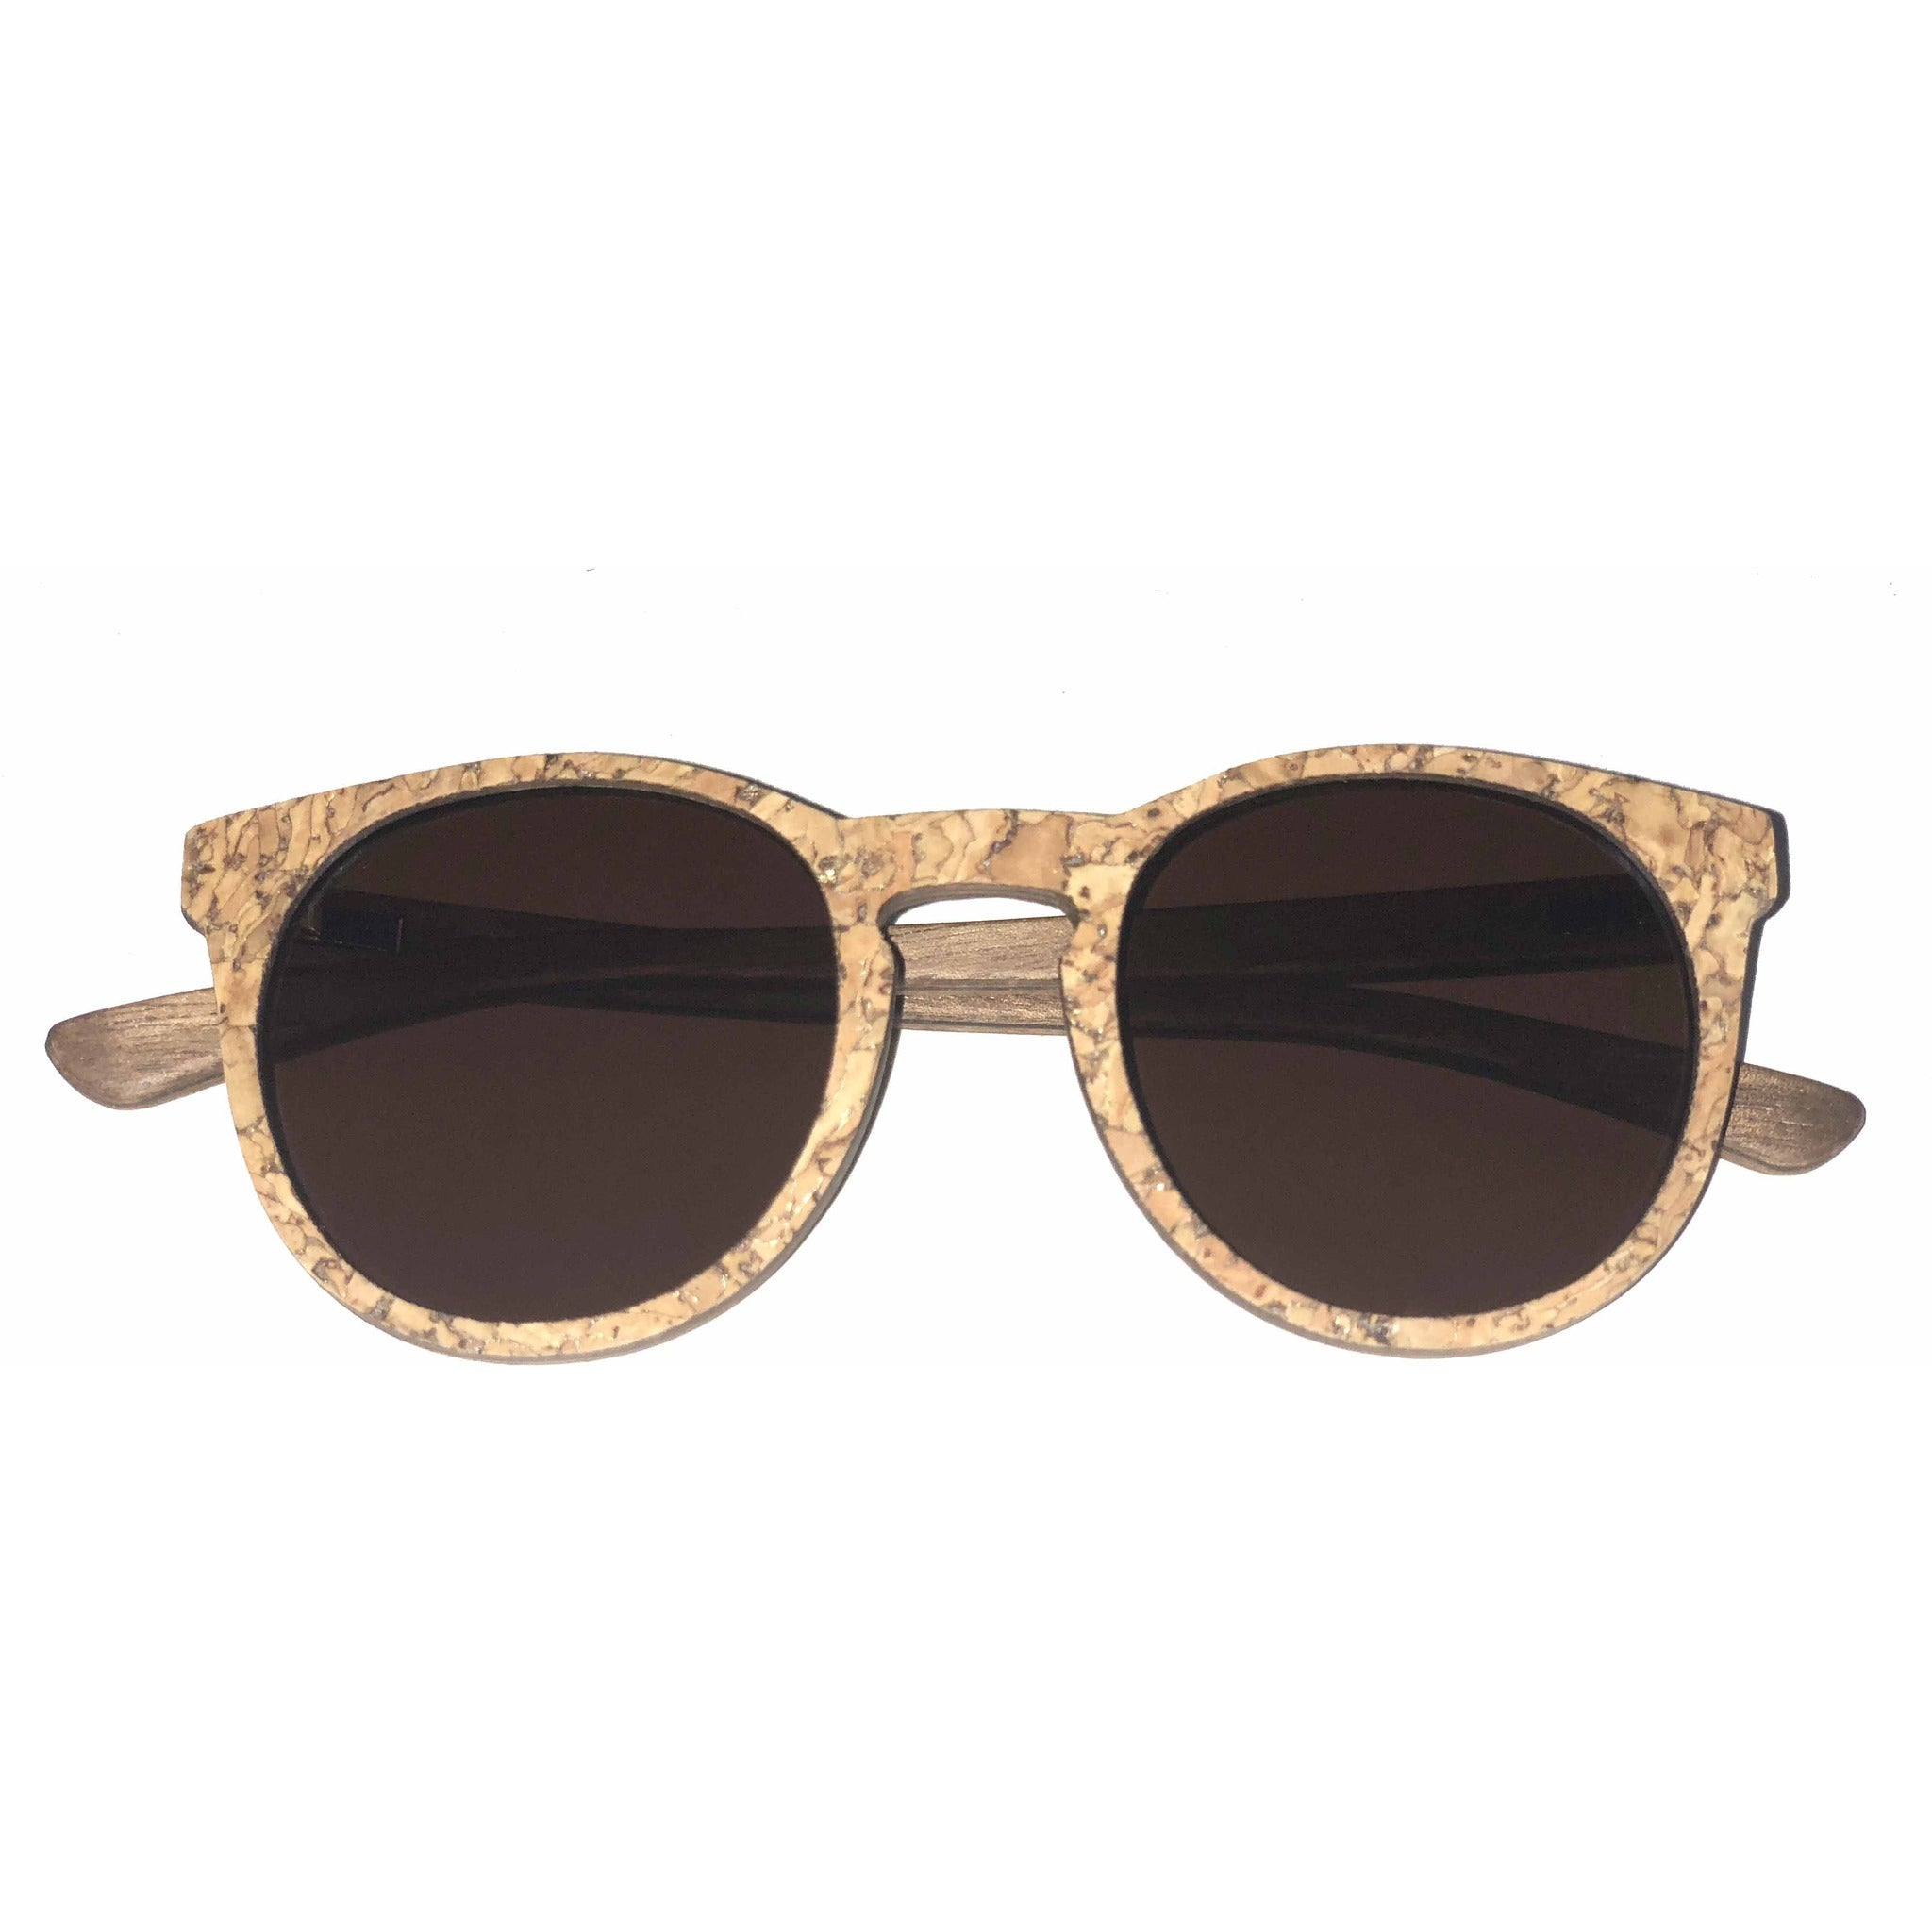 QUEORK Sunglasses